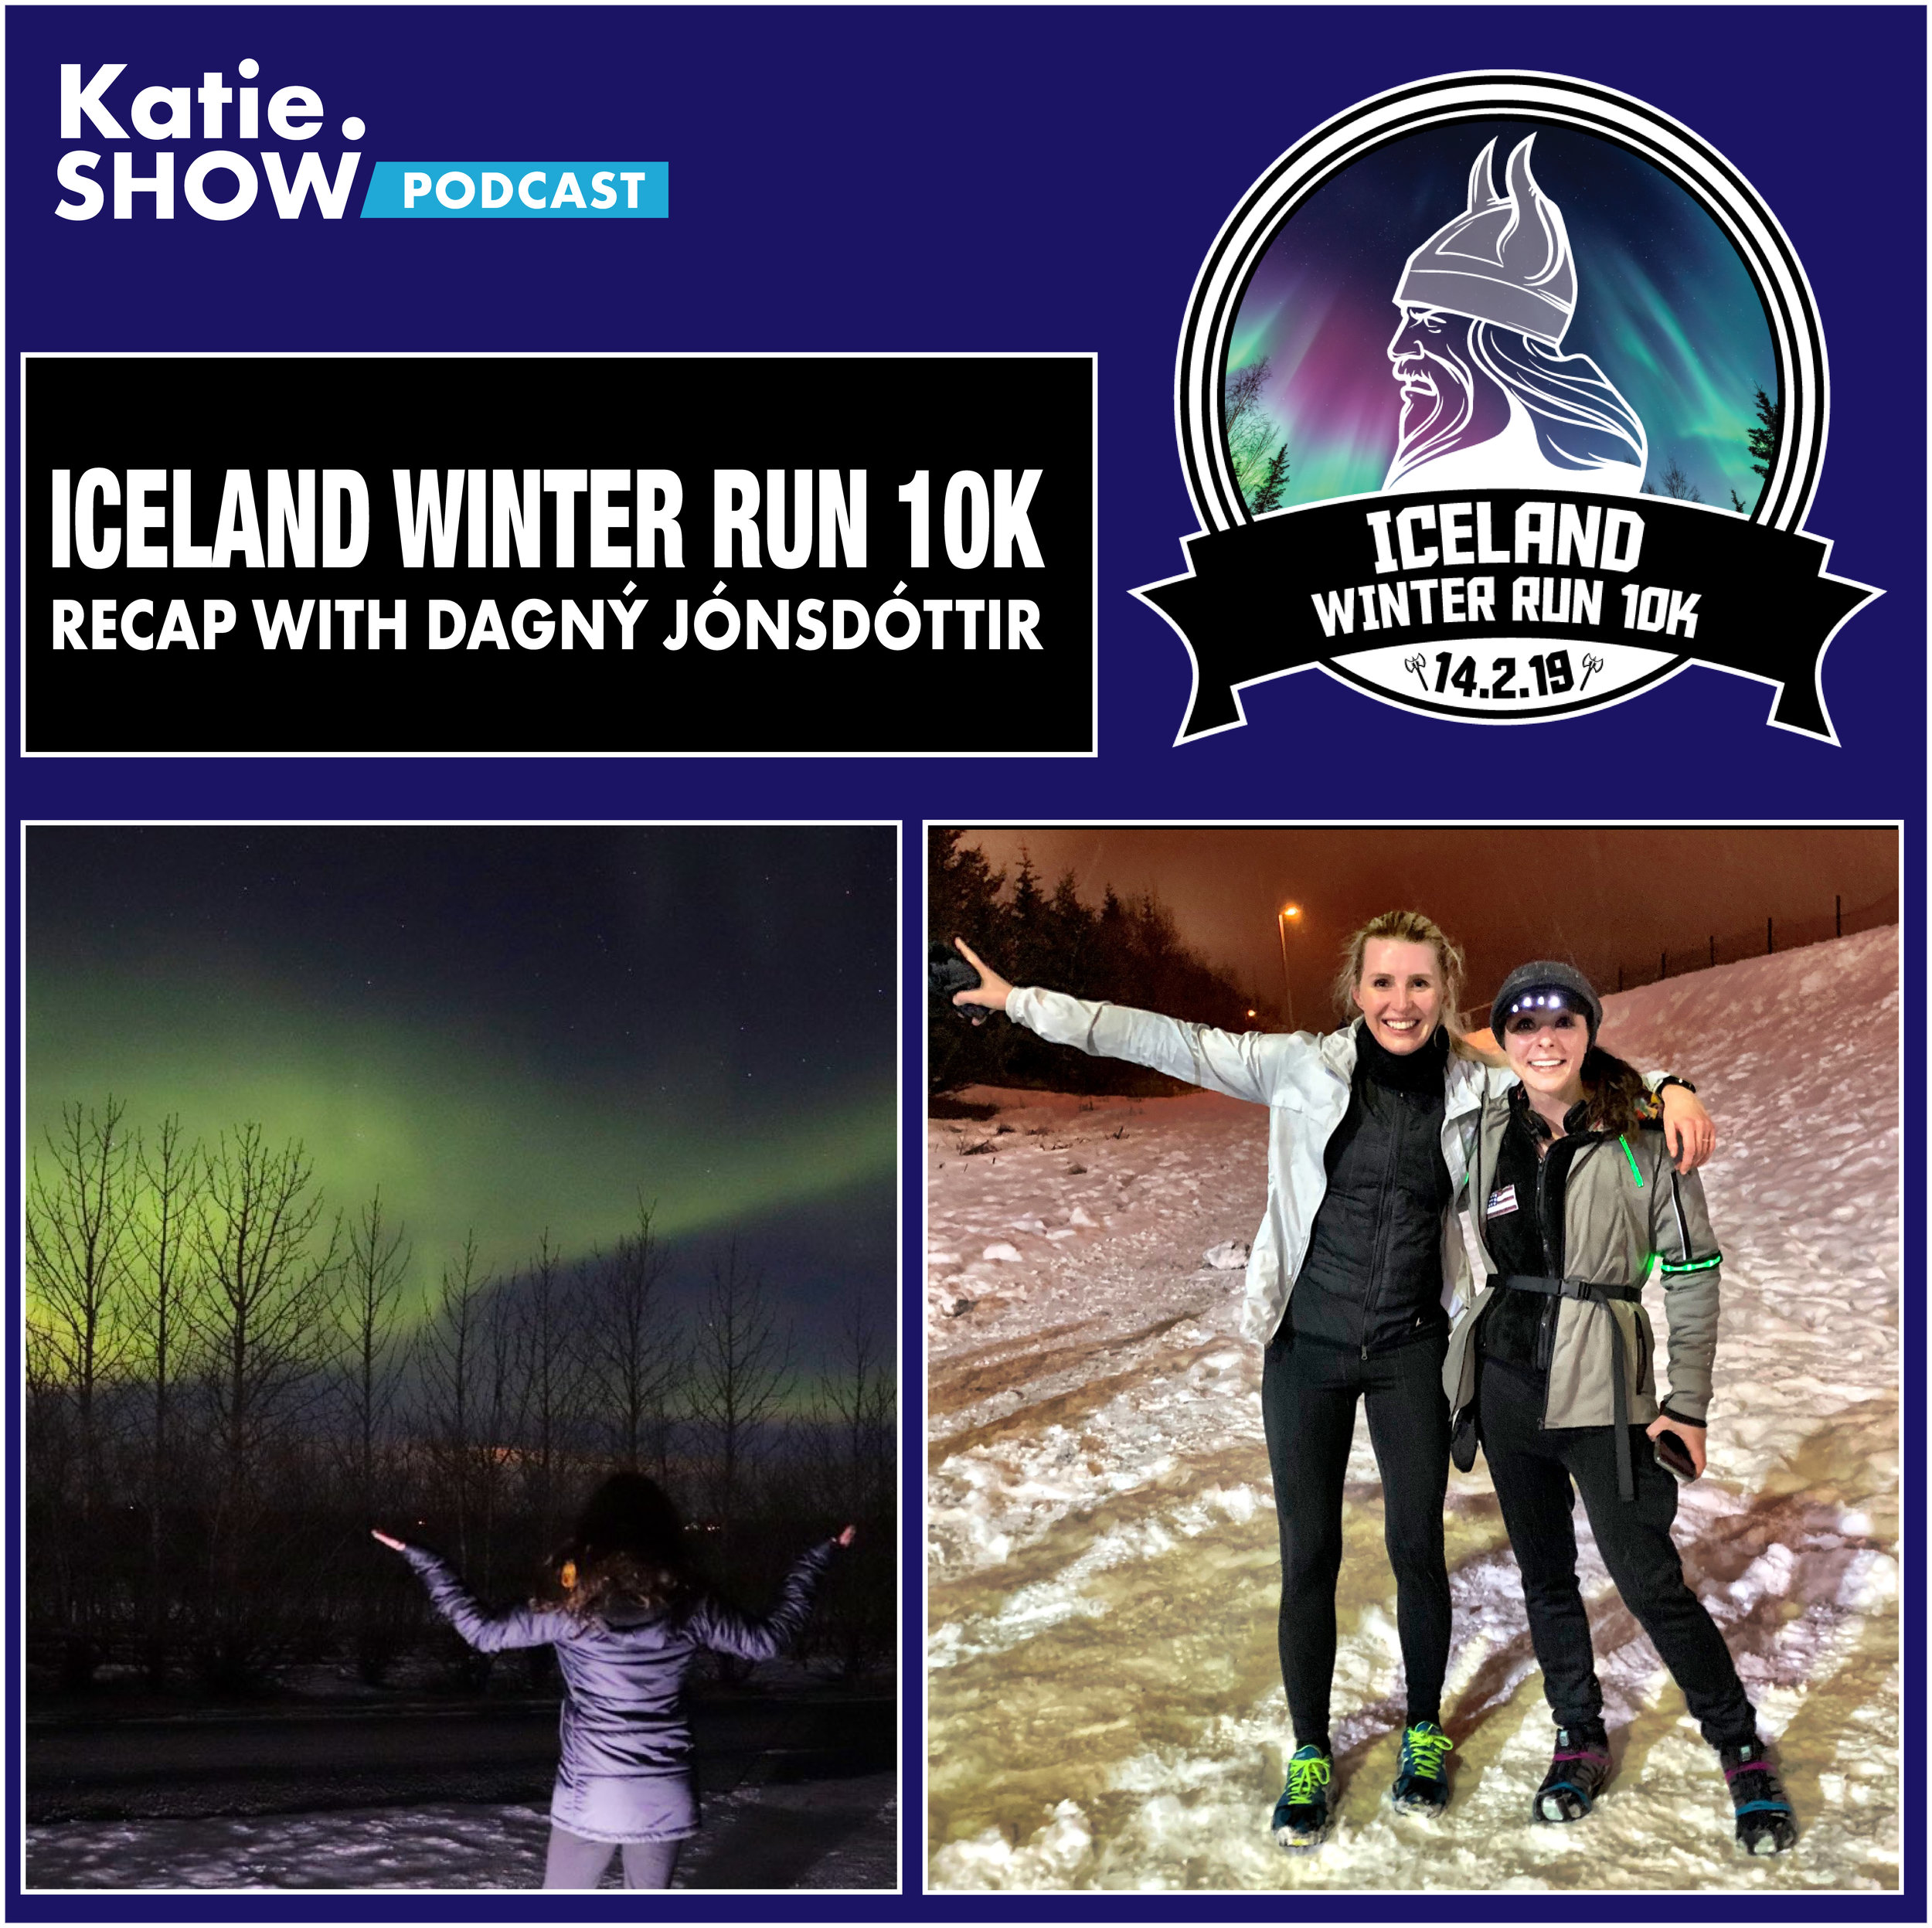 Iceland Winter Run 10k